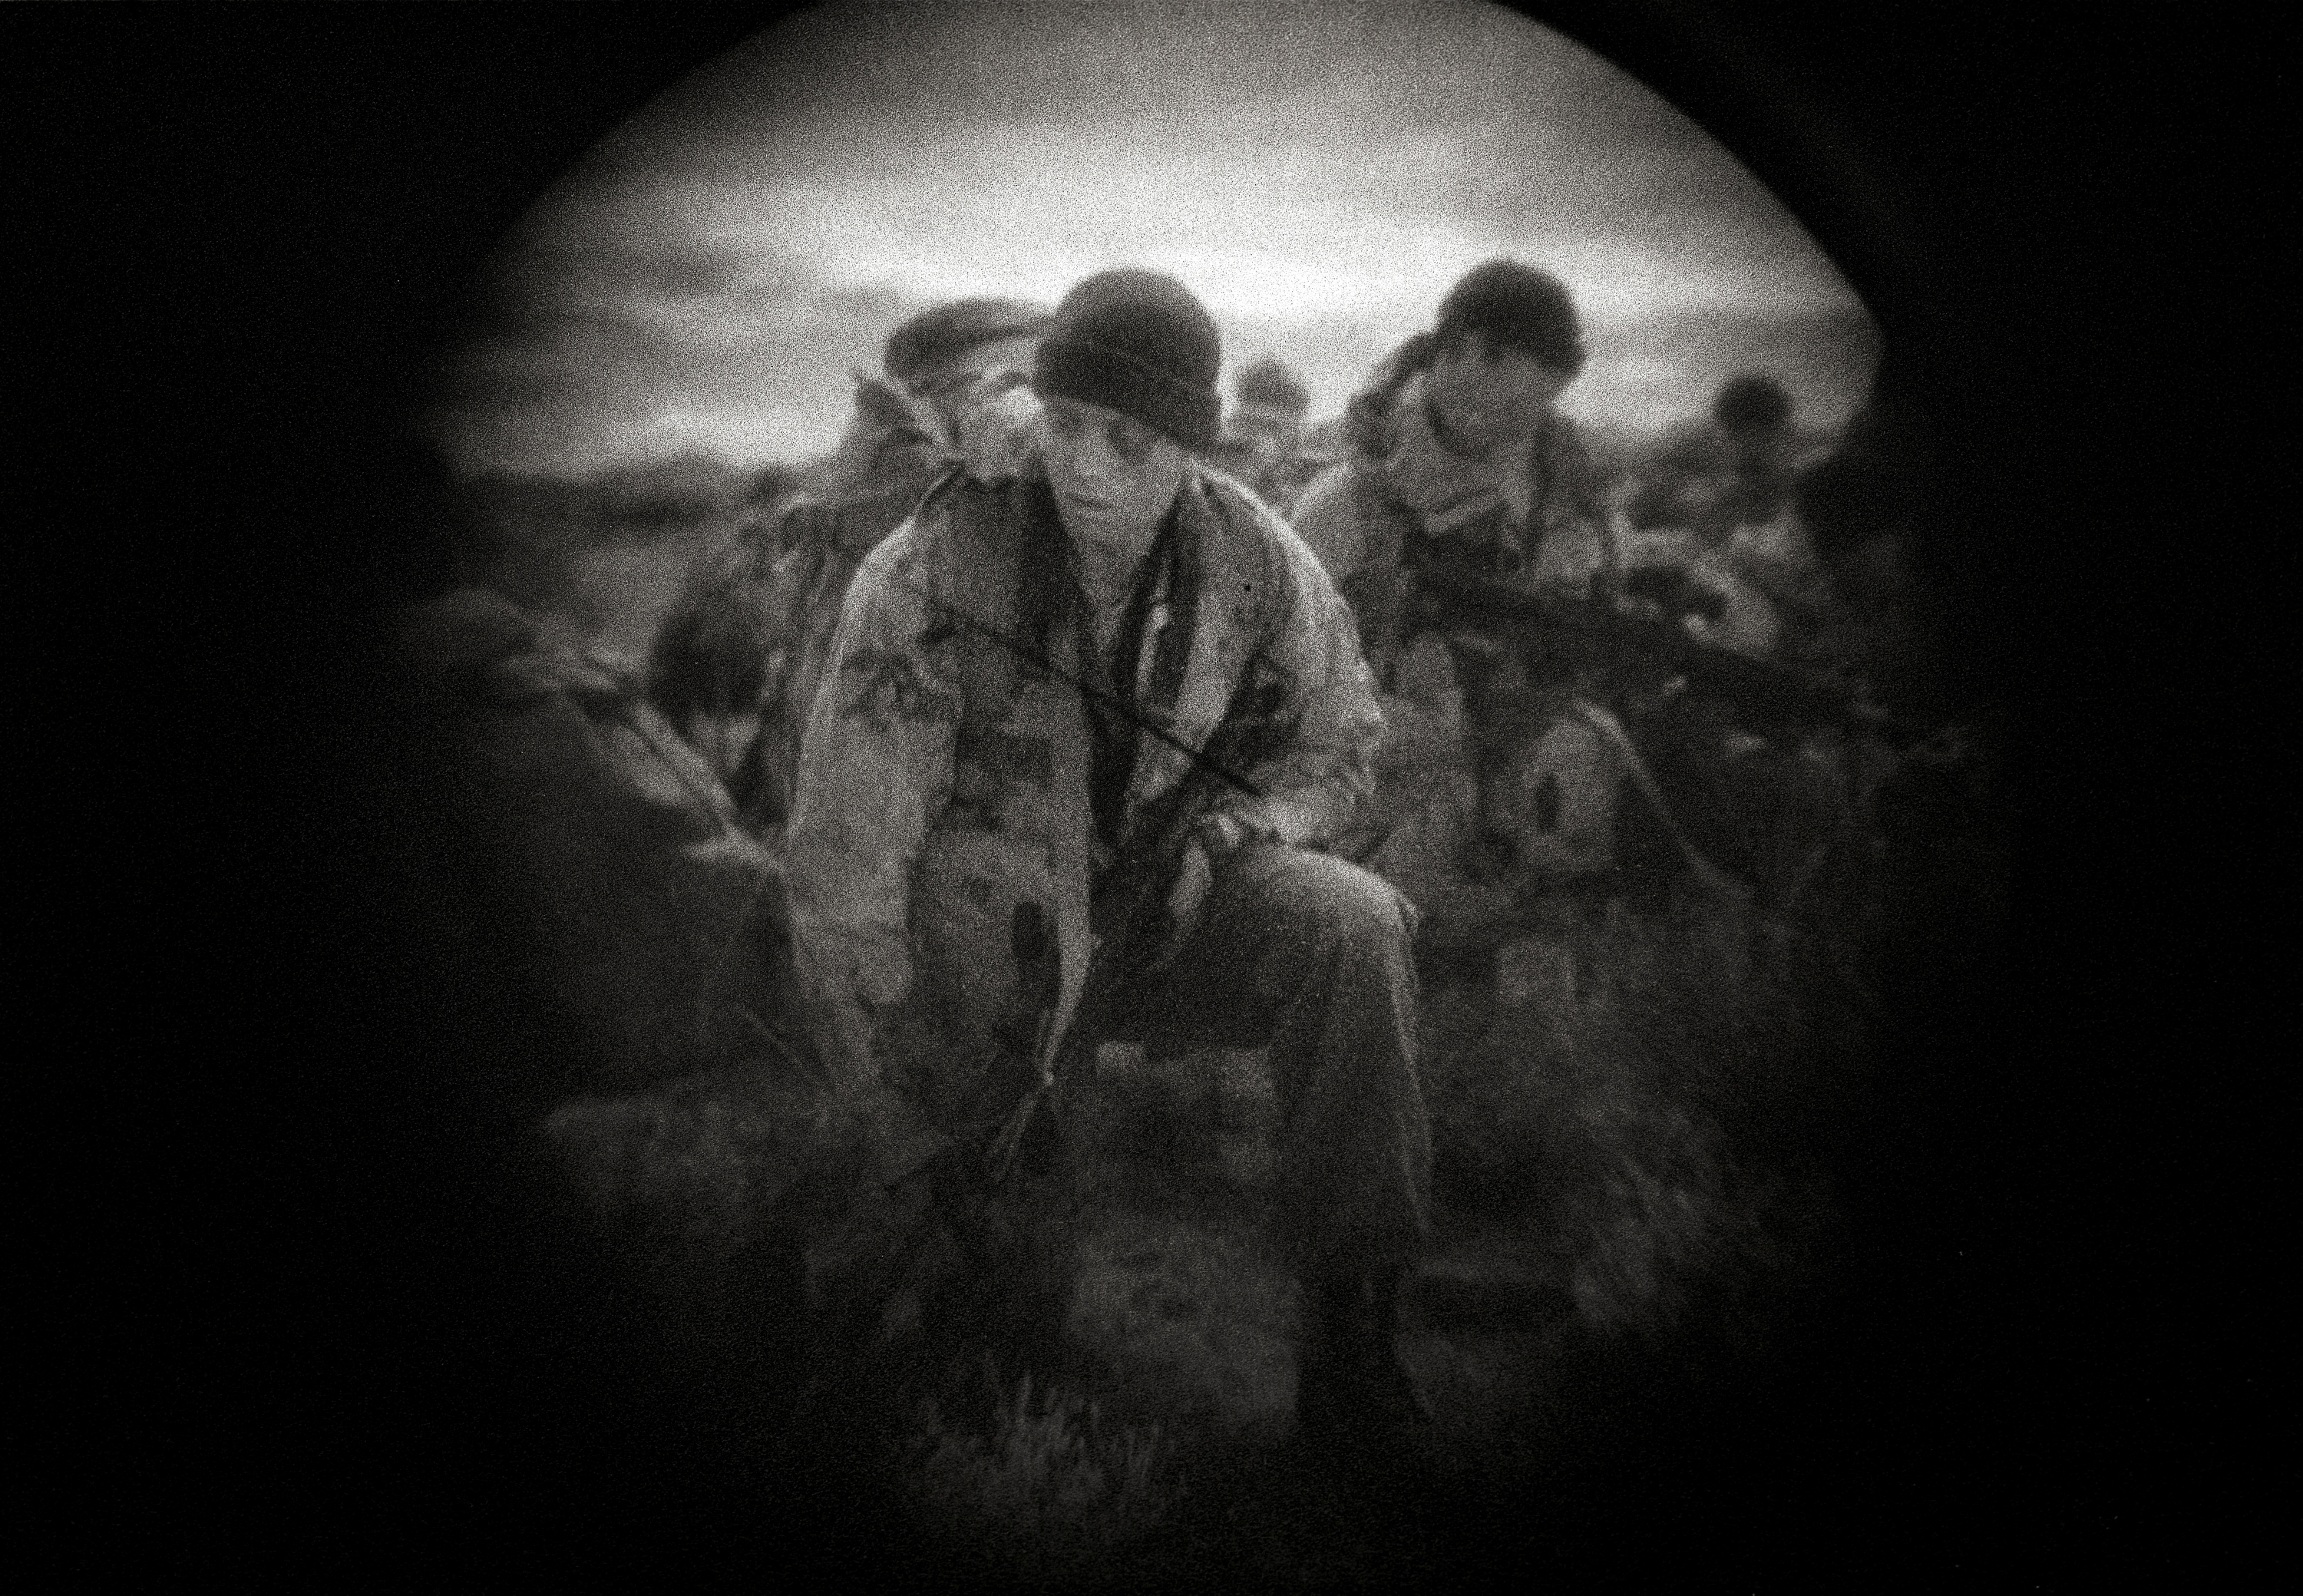 A night training operation by the United States Border Patrol Special Response Team Training in New Mexico. The photograph was made through night vision glasses.